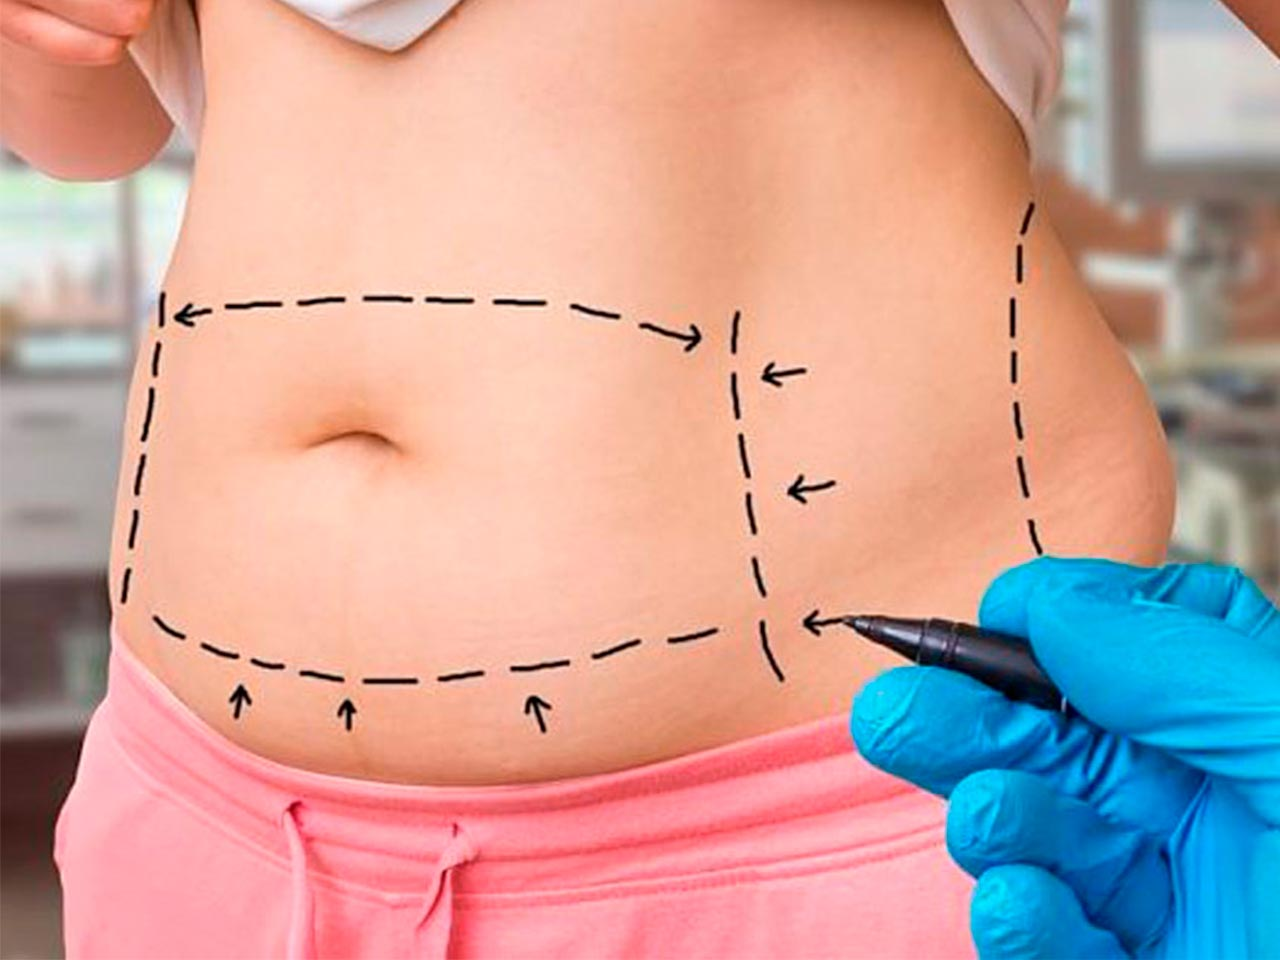 Make your waist look slimmer with lipo